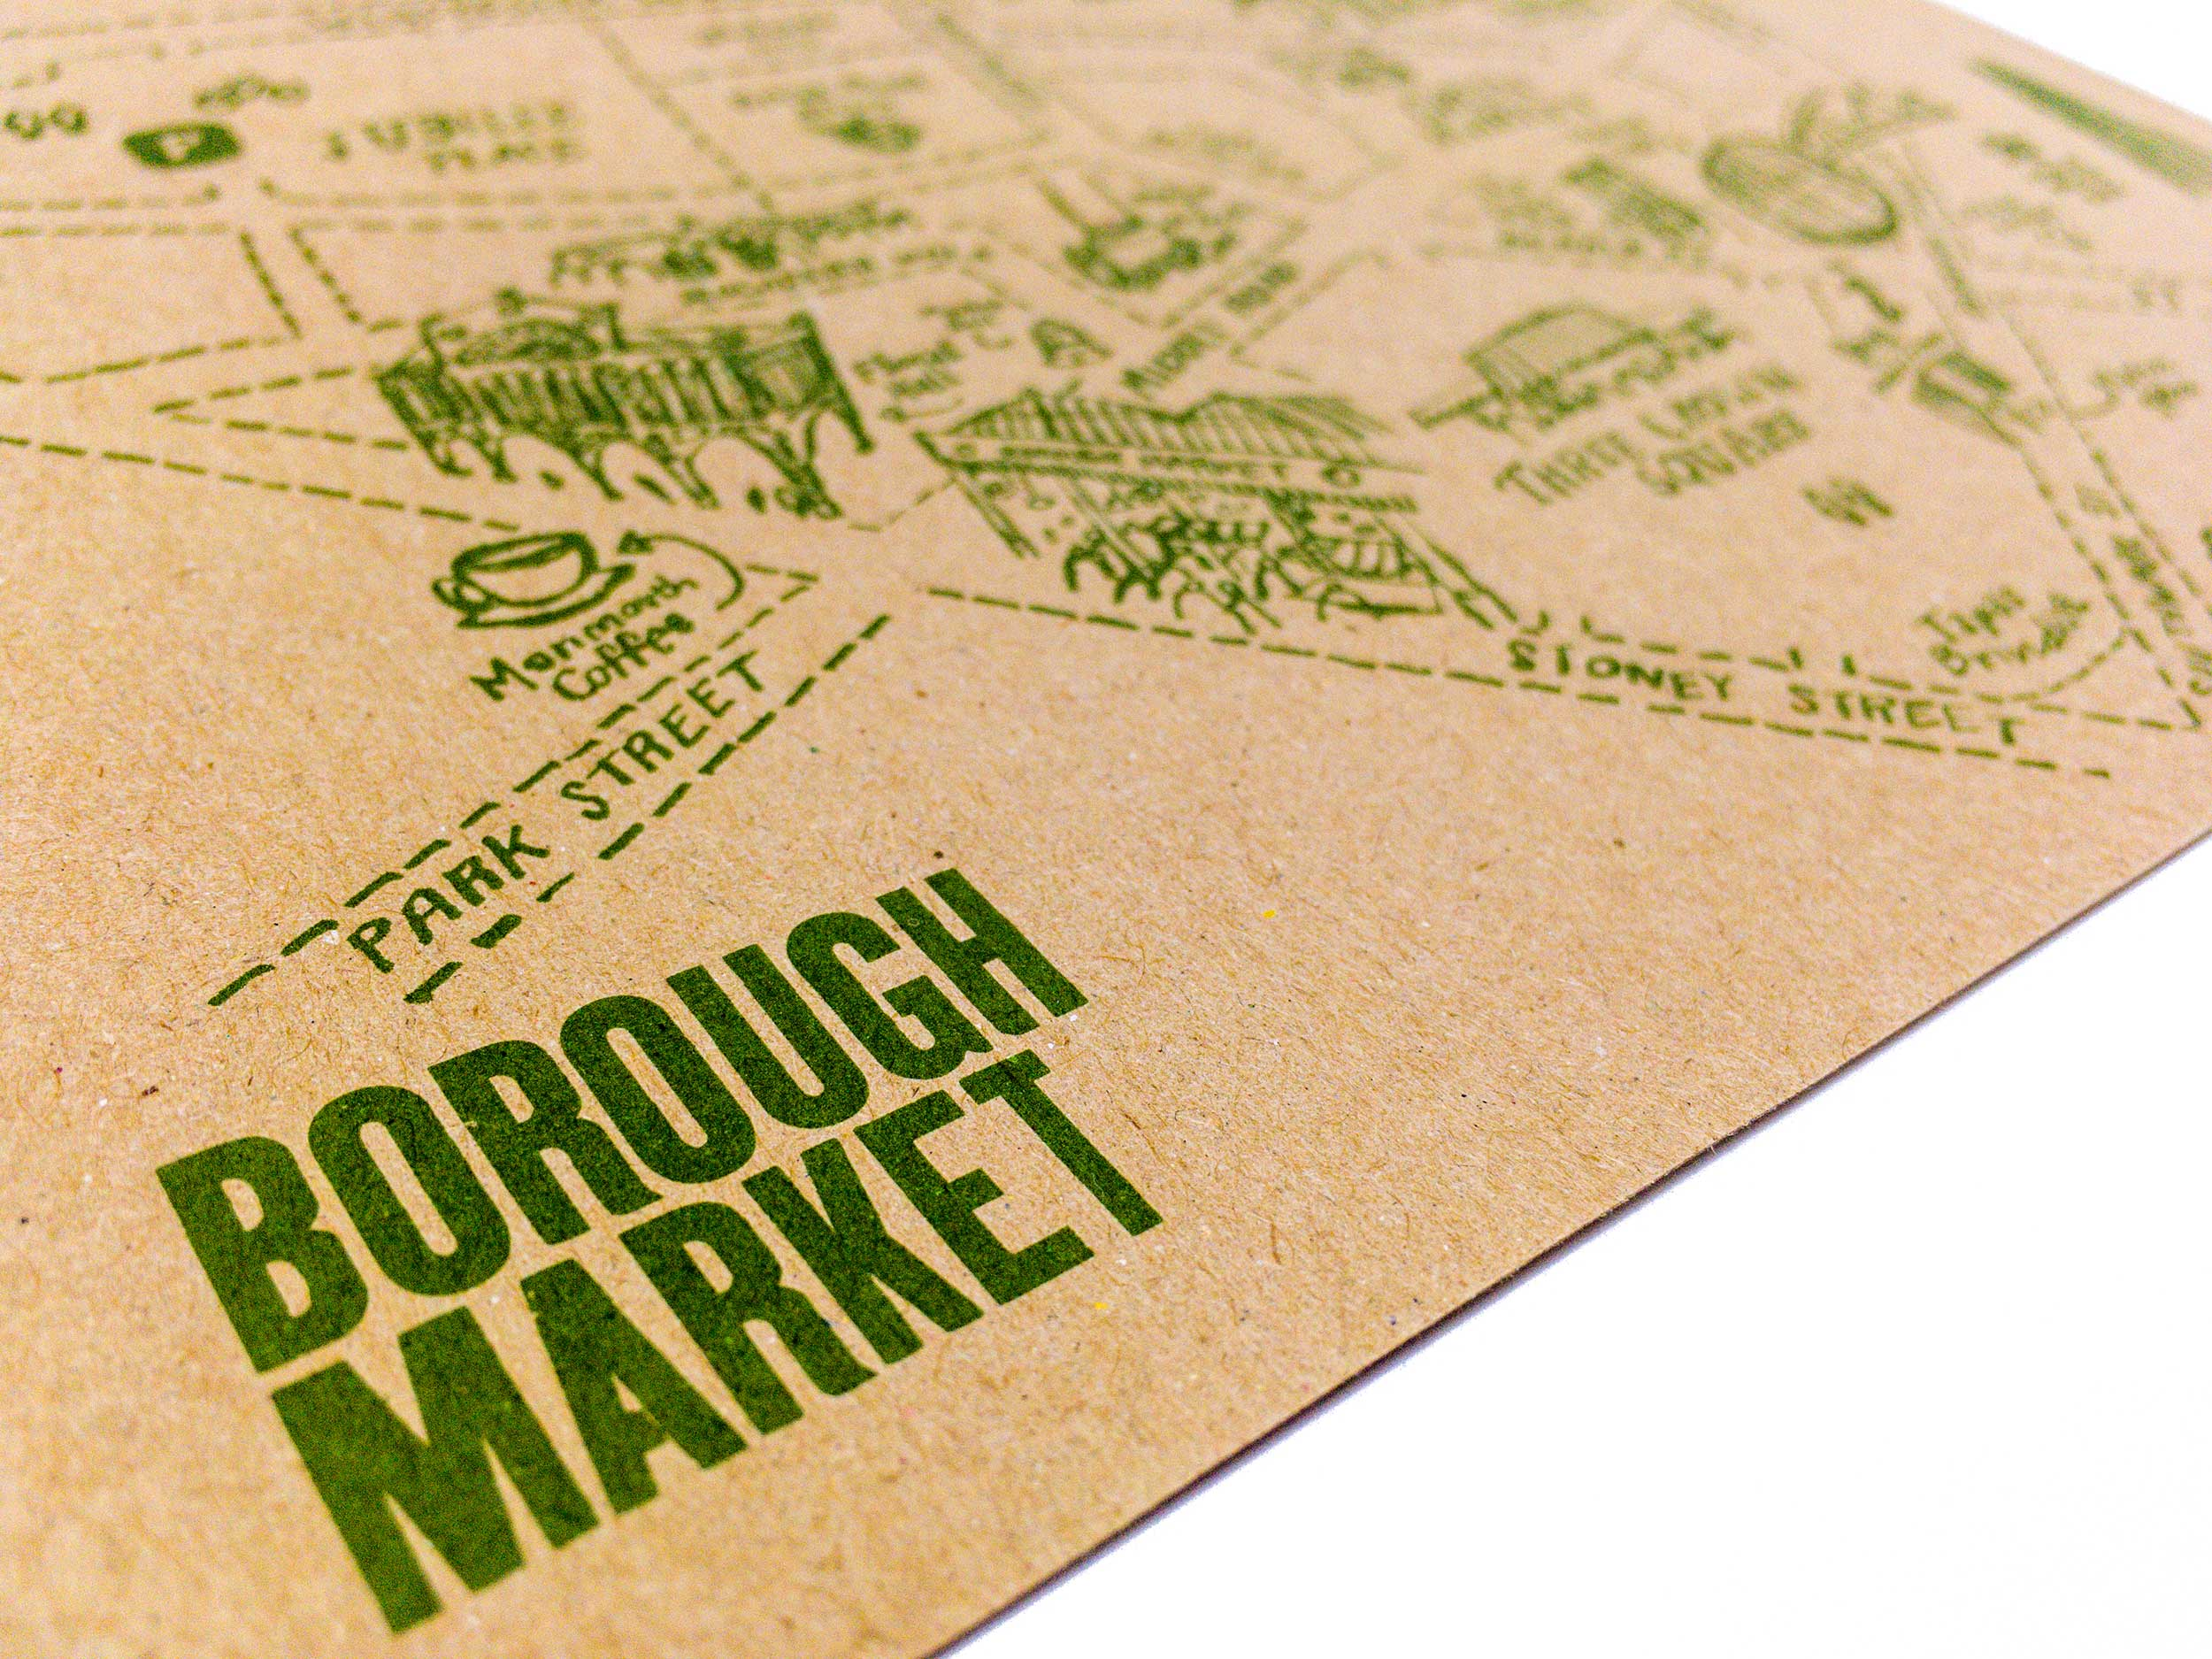 More Borough Market by James Oses, image 4